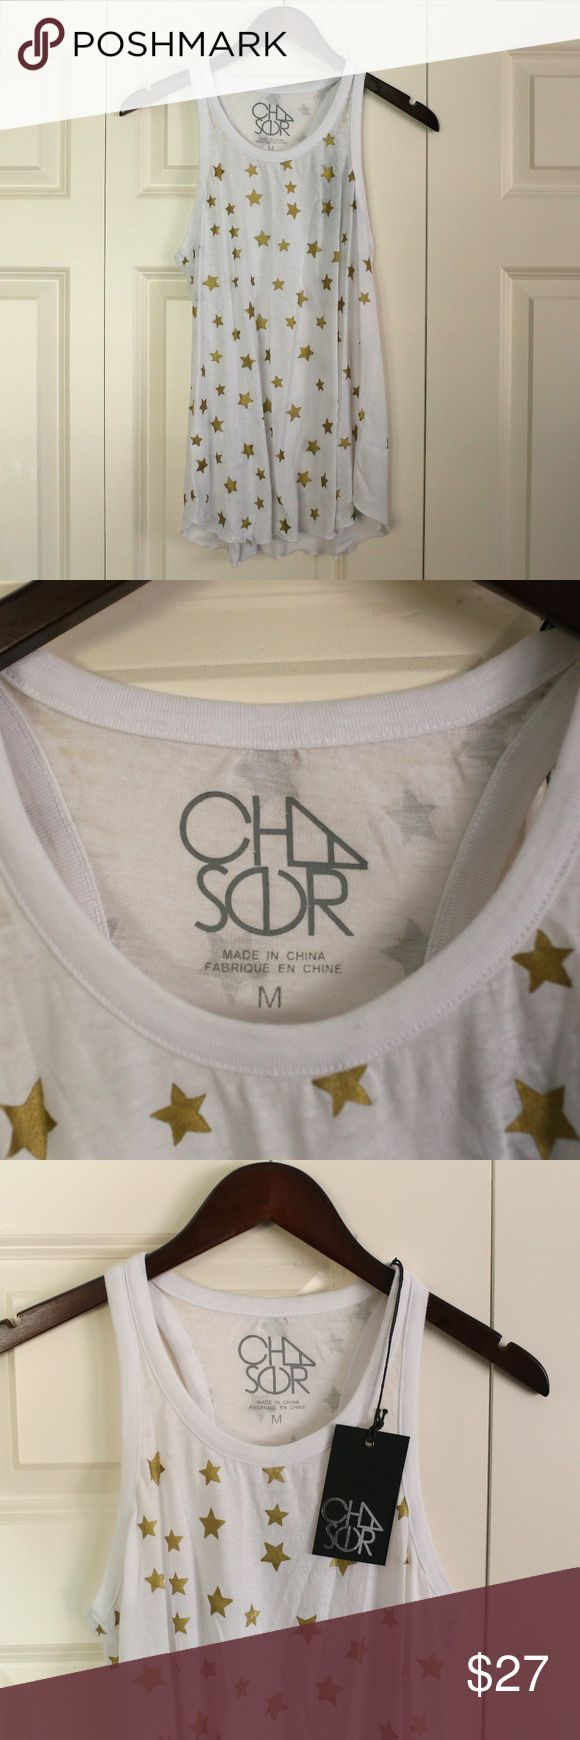 NWT CHASER Racer Back Tank with Gold Stars 📦 Ship out the same day or next, depending on when you ordered 💌 If you have any questions or would like to see more pictures, leave a comment! ❌No trades 🔎Color: White & Gold 🔎Style: Tank top 🔎Size: Medium 🔎Condition: New with tags, never worn Chaser Tops Tank Tops